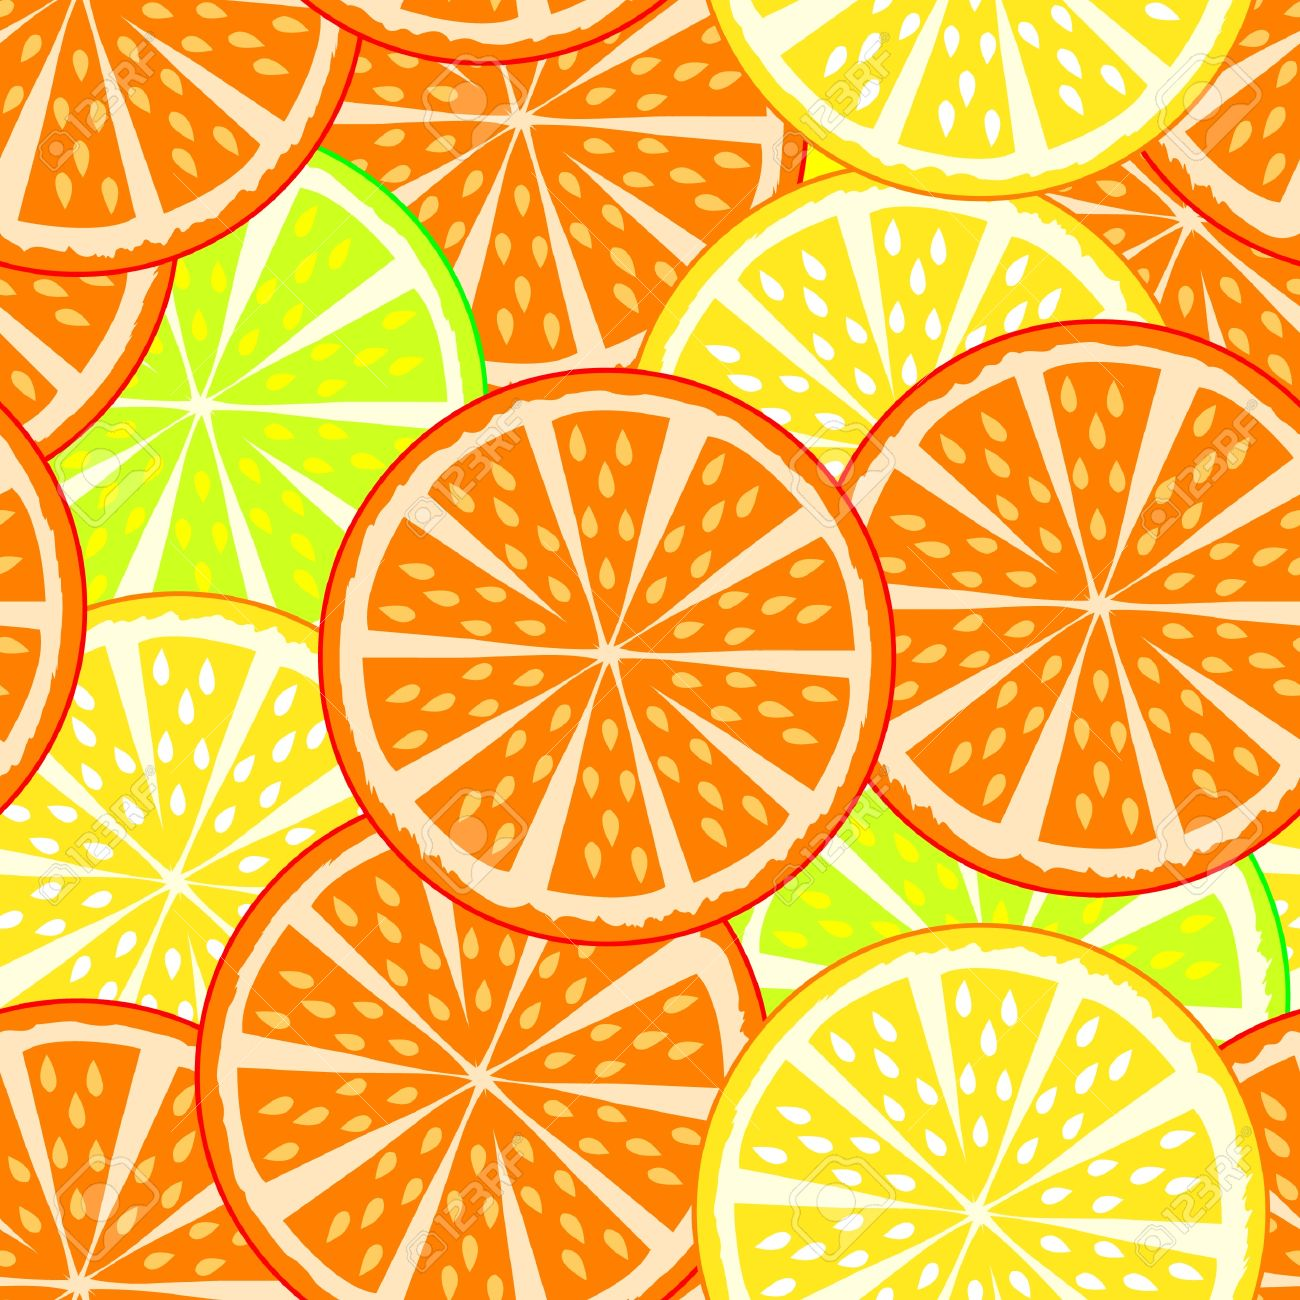 oranges and lemons, seamless texture Stock Vector - 17822809